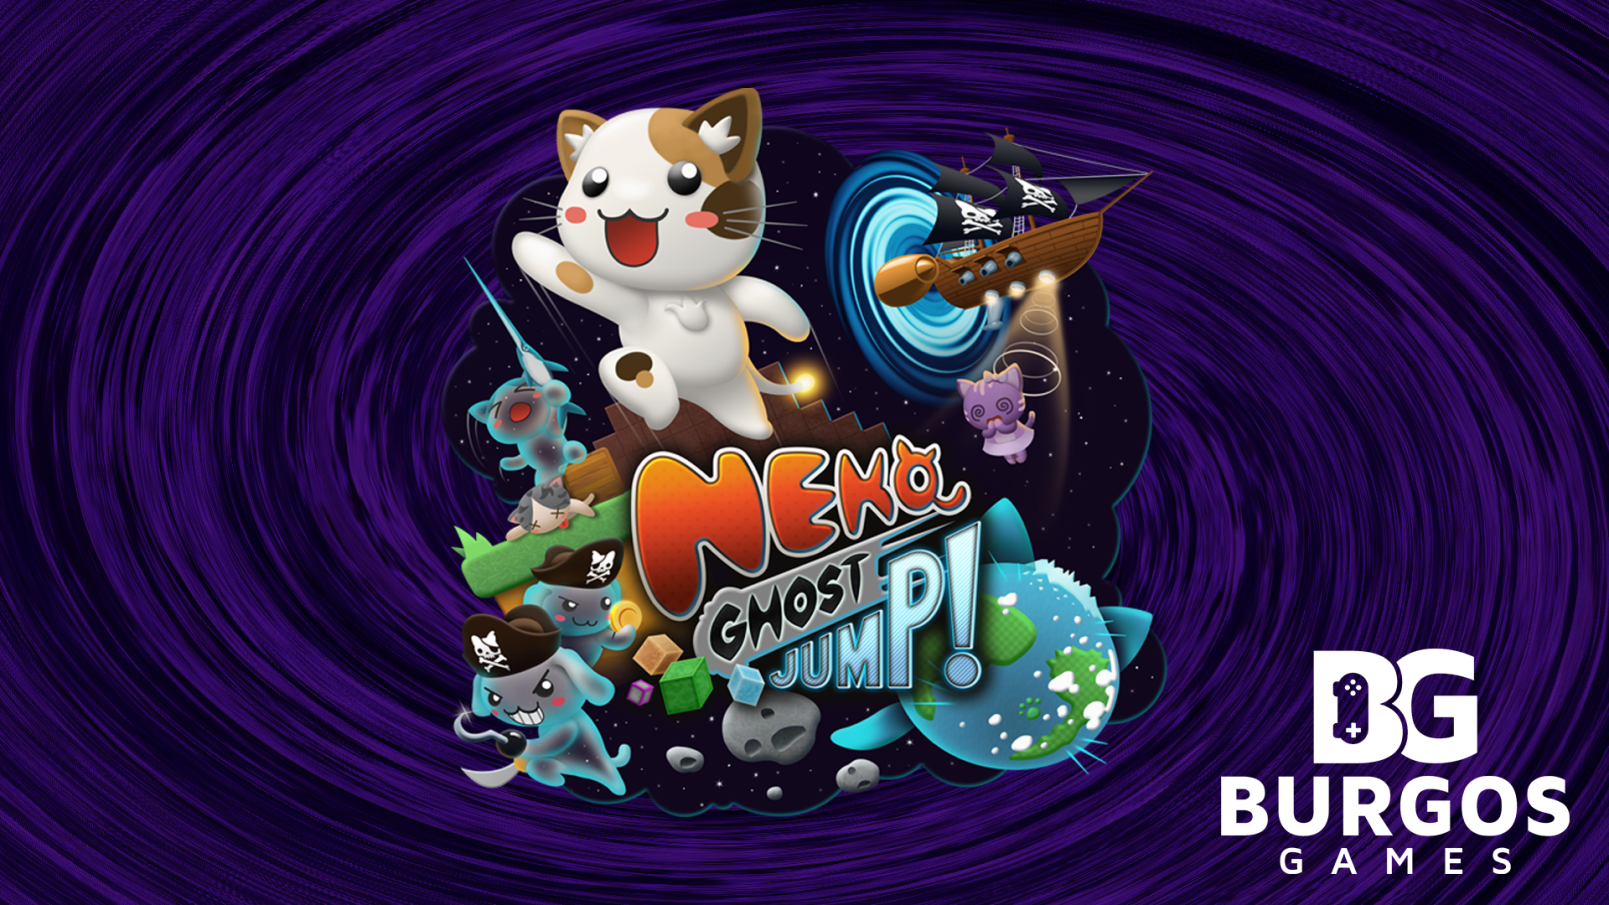 Neko Ghost, Jump! – Developer Interview